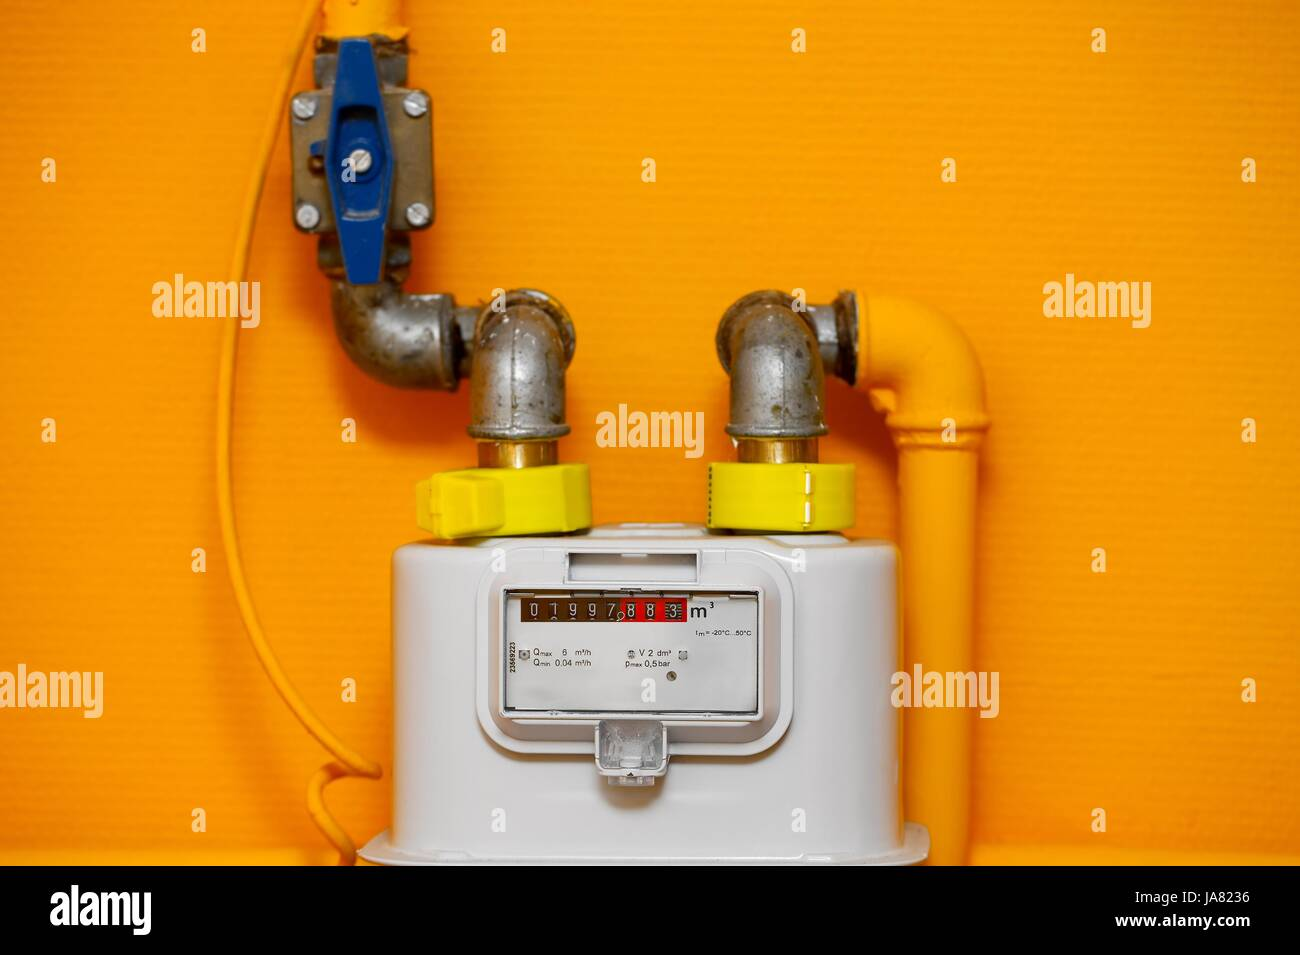 house, building, consumption, household, flow, engineering, interior, measured, - Stock Image